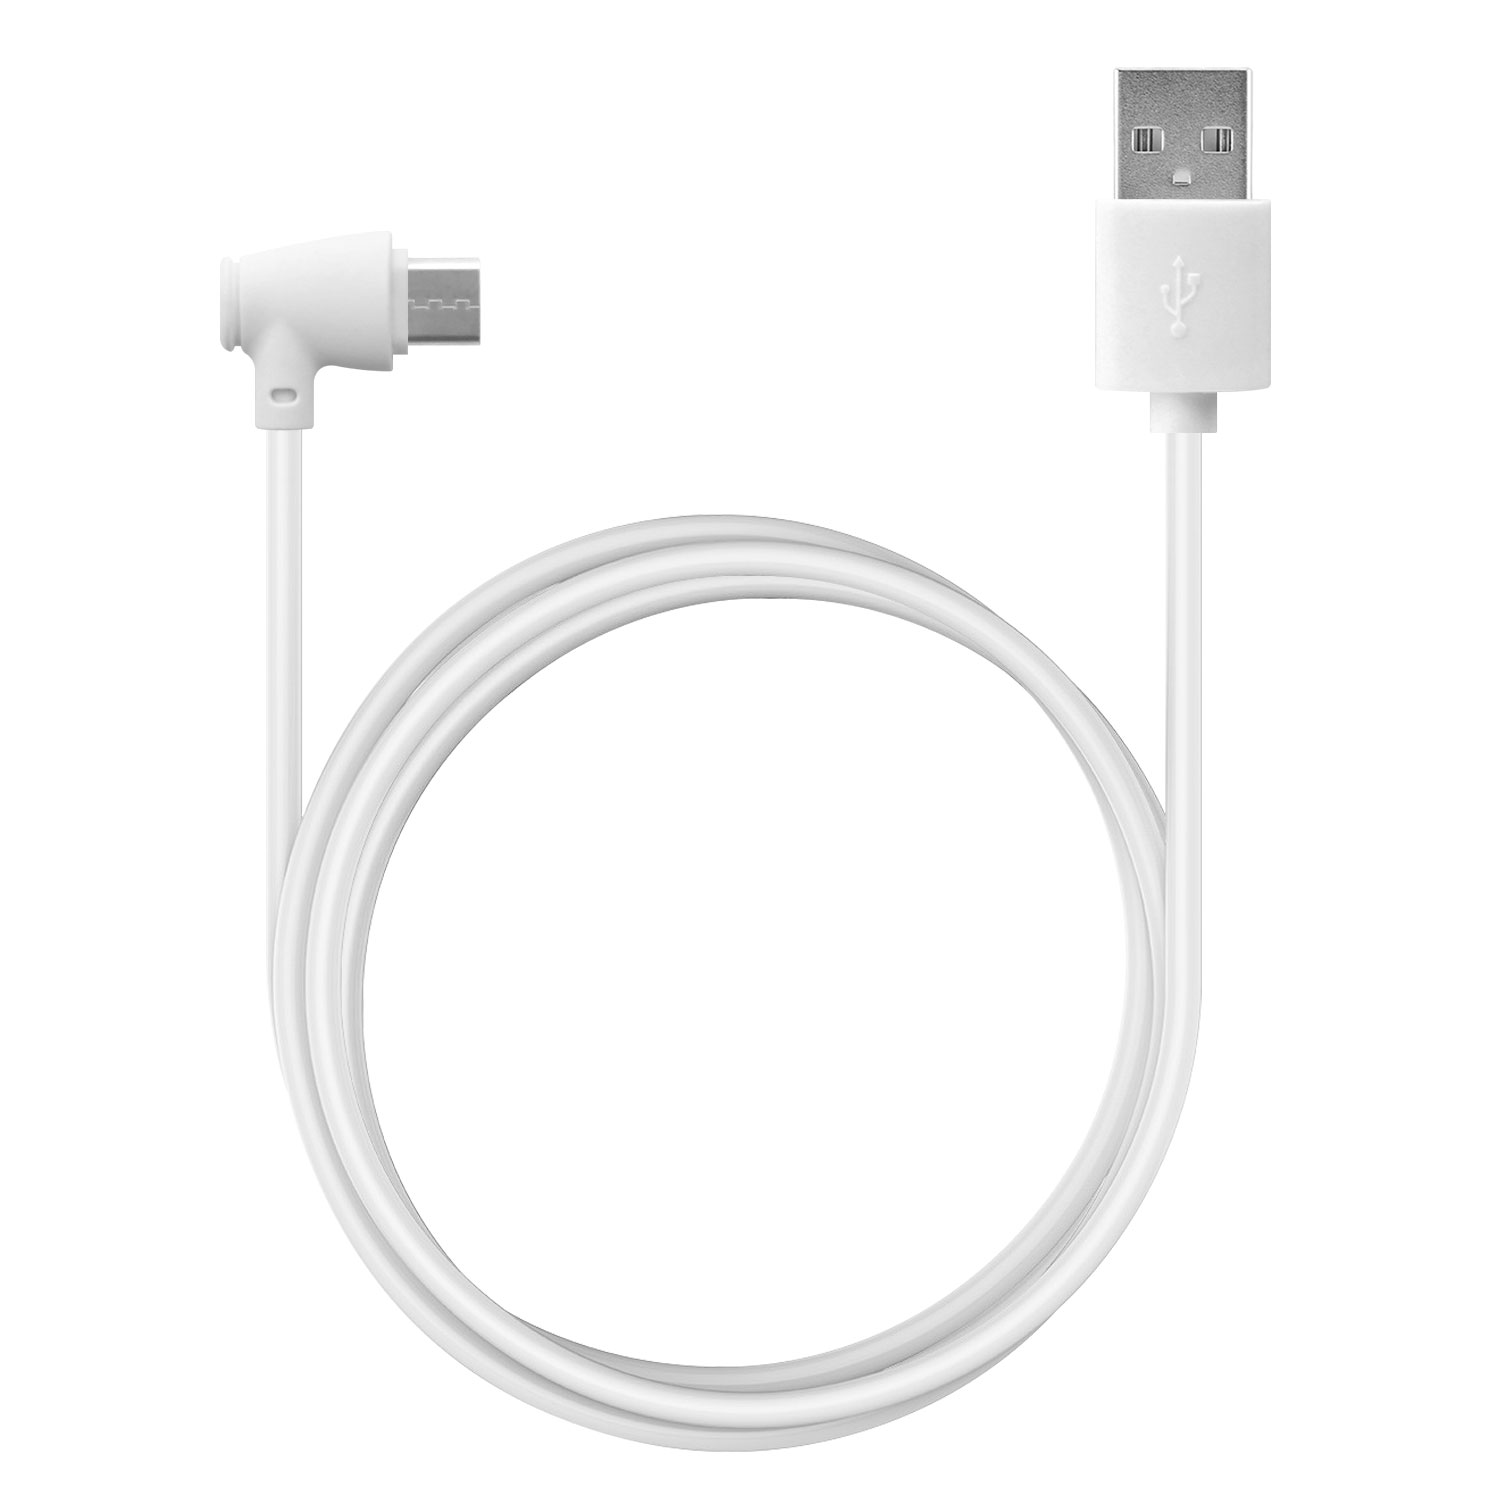 Samsung Galaxy A50 USB Type-C To USB Type-A Data Charging Cable White 3.3ft Angled